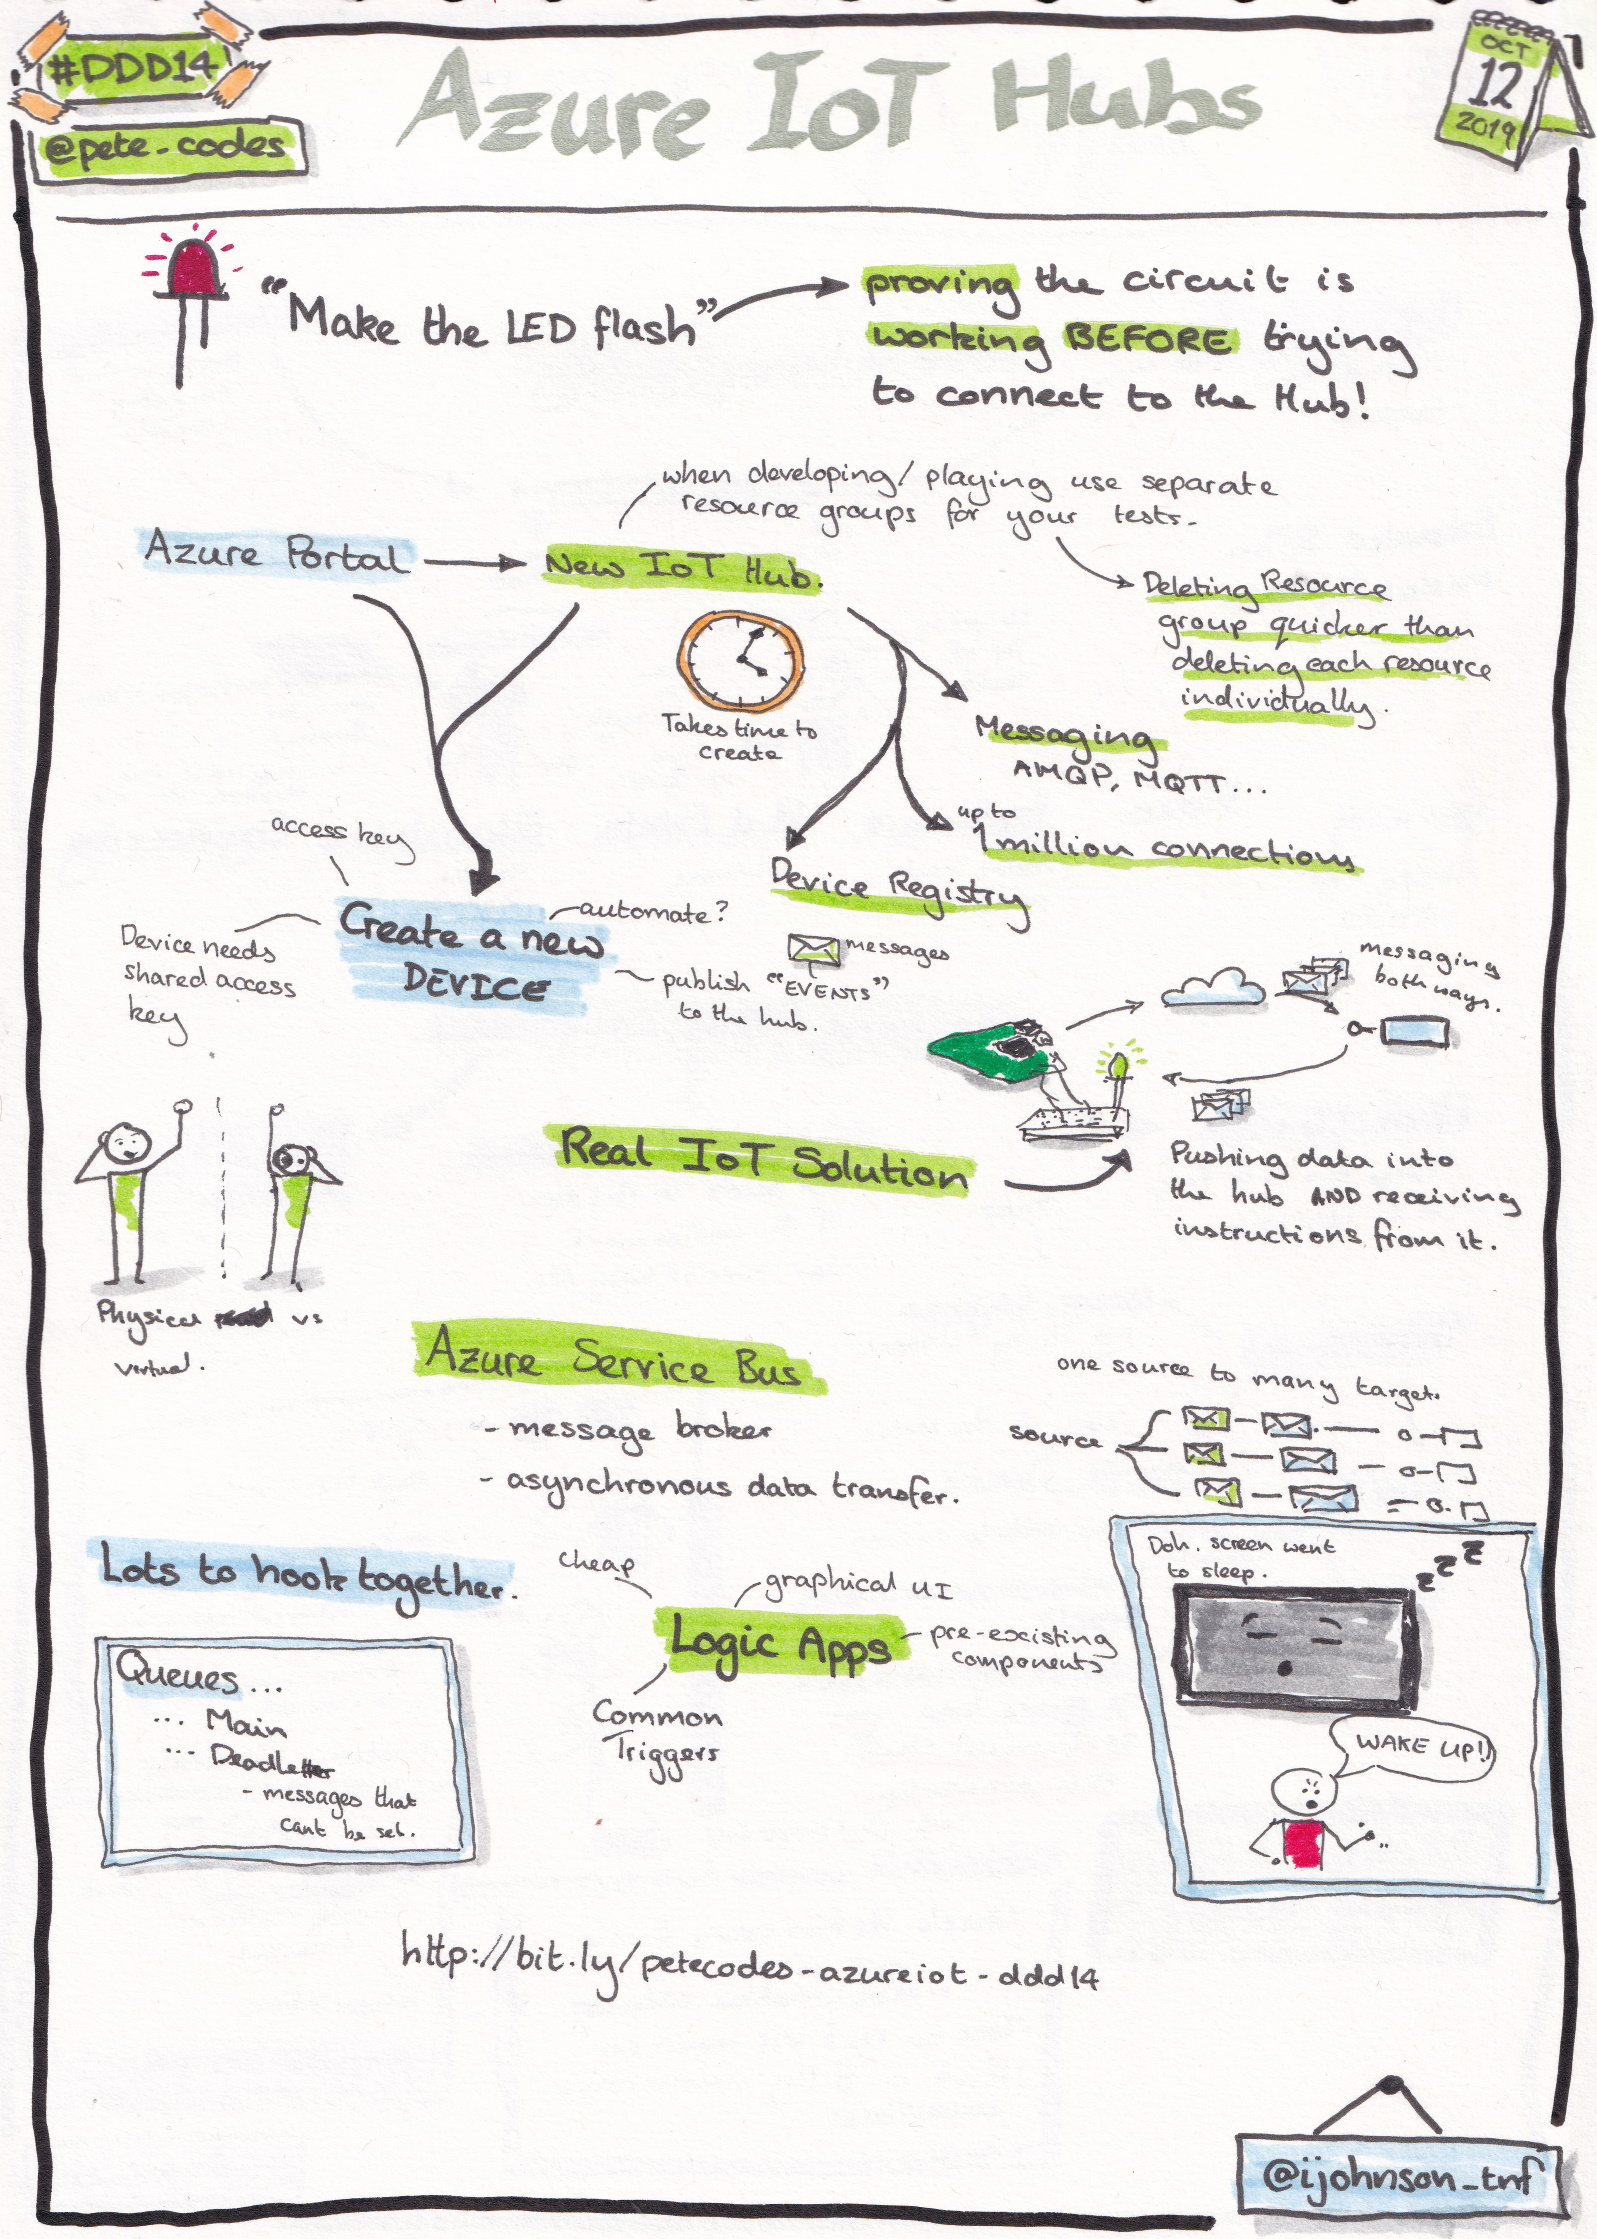 Sketchnotes from the talk 'Azure IoT Hubs' by Pete Gallagher